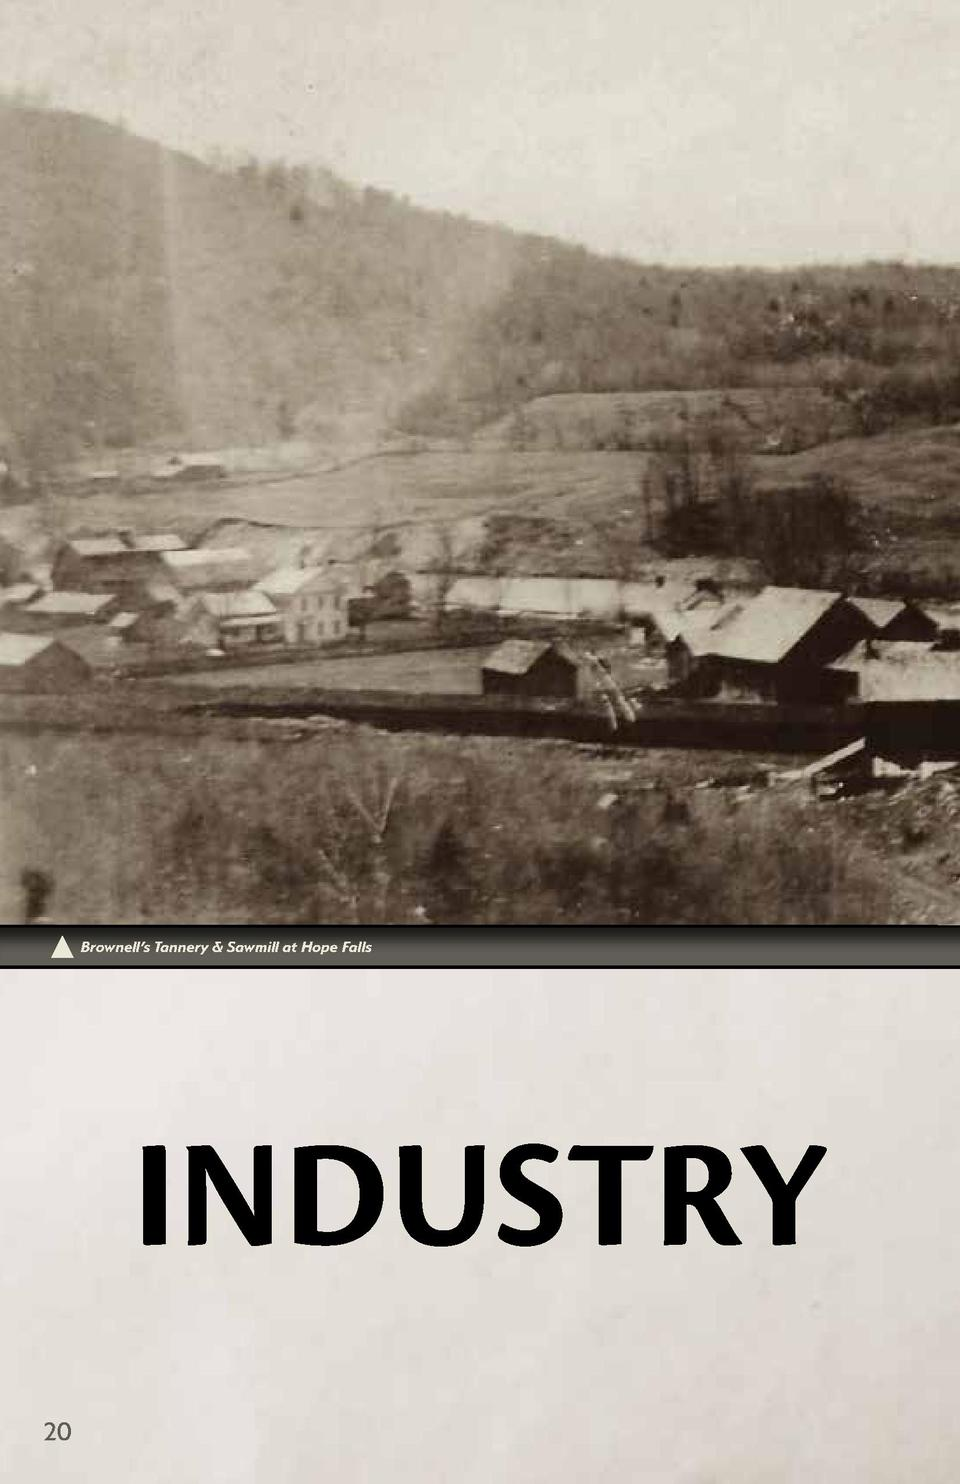 Brownell   s Tannery   Sawmill at Hope Falls  INDUSTRY 20